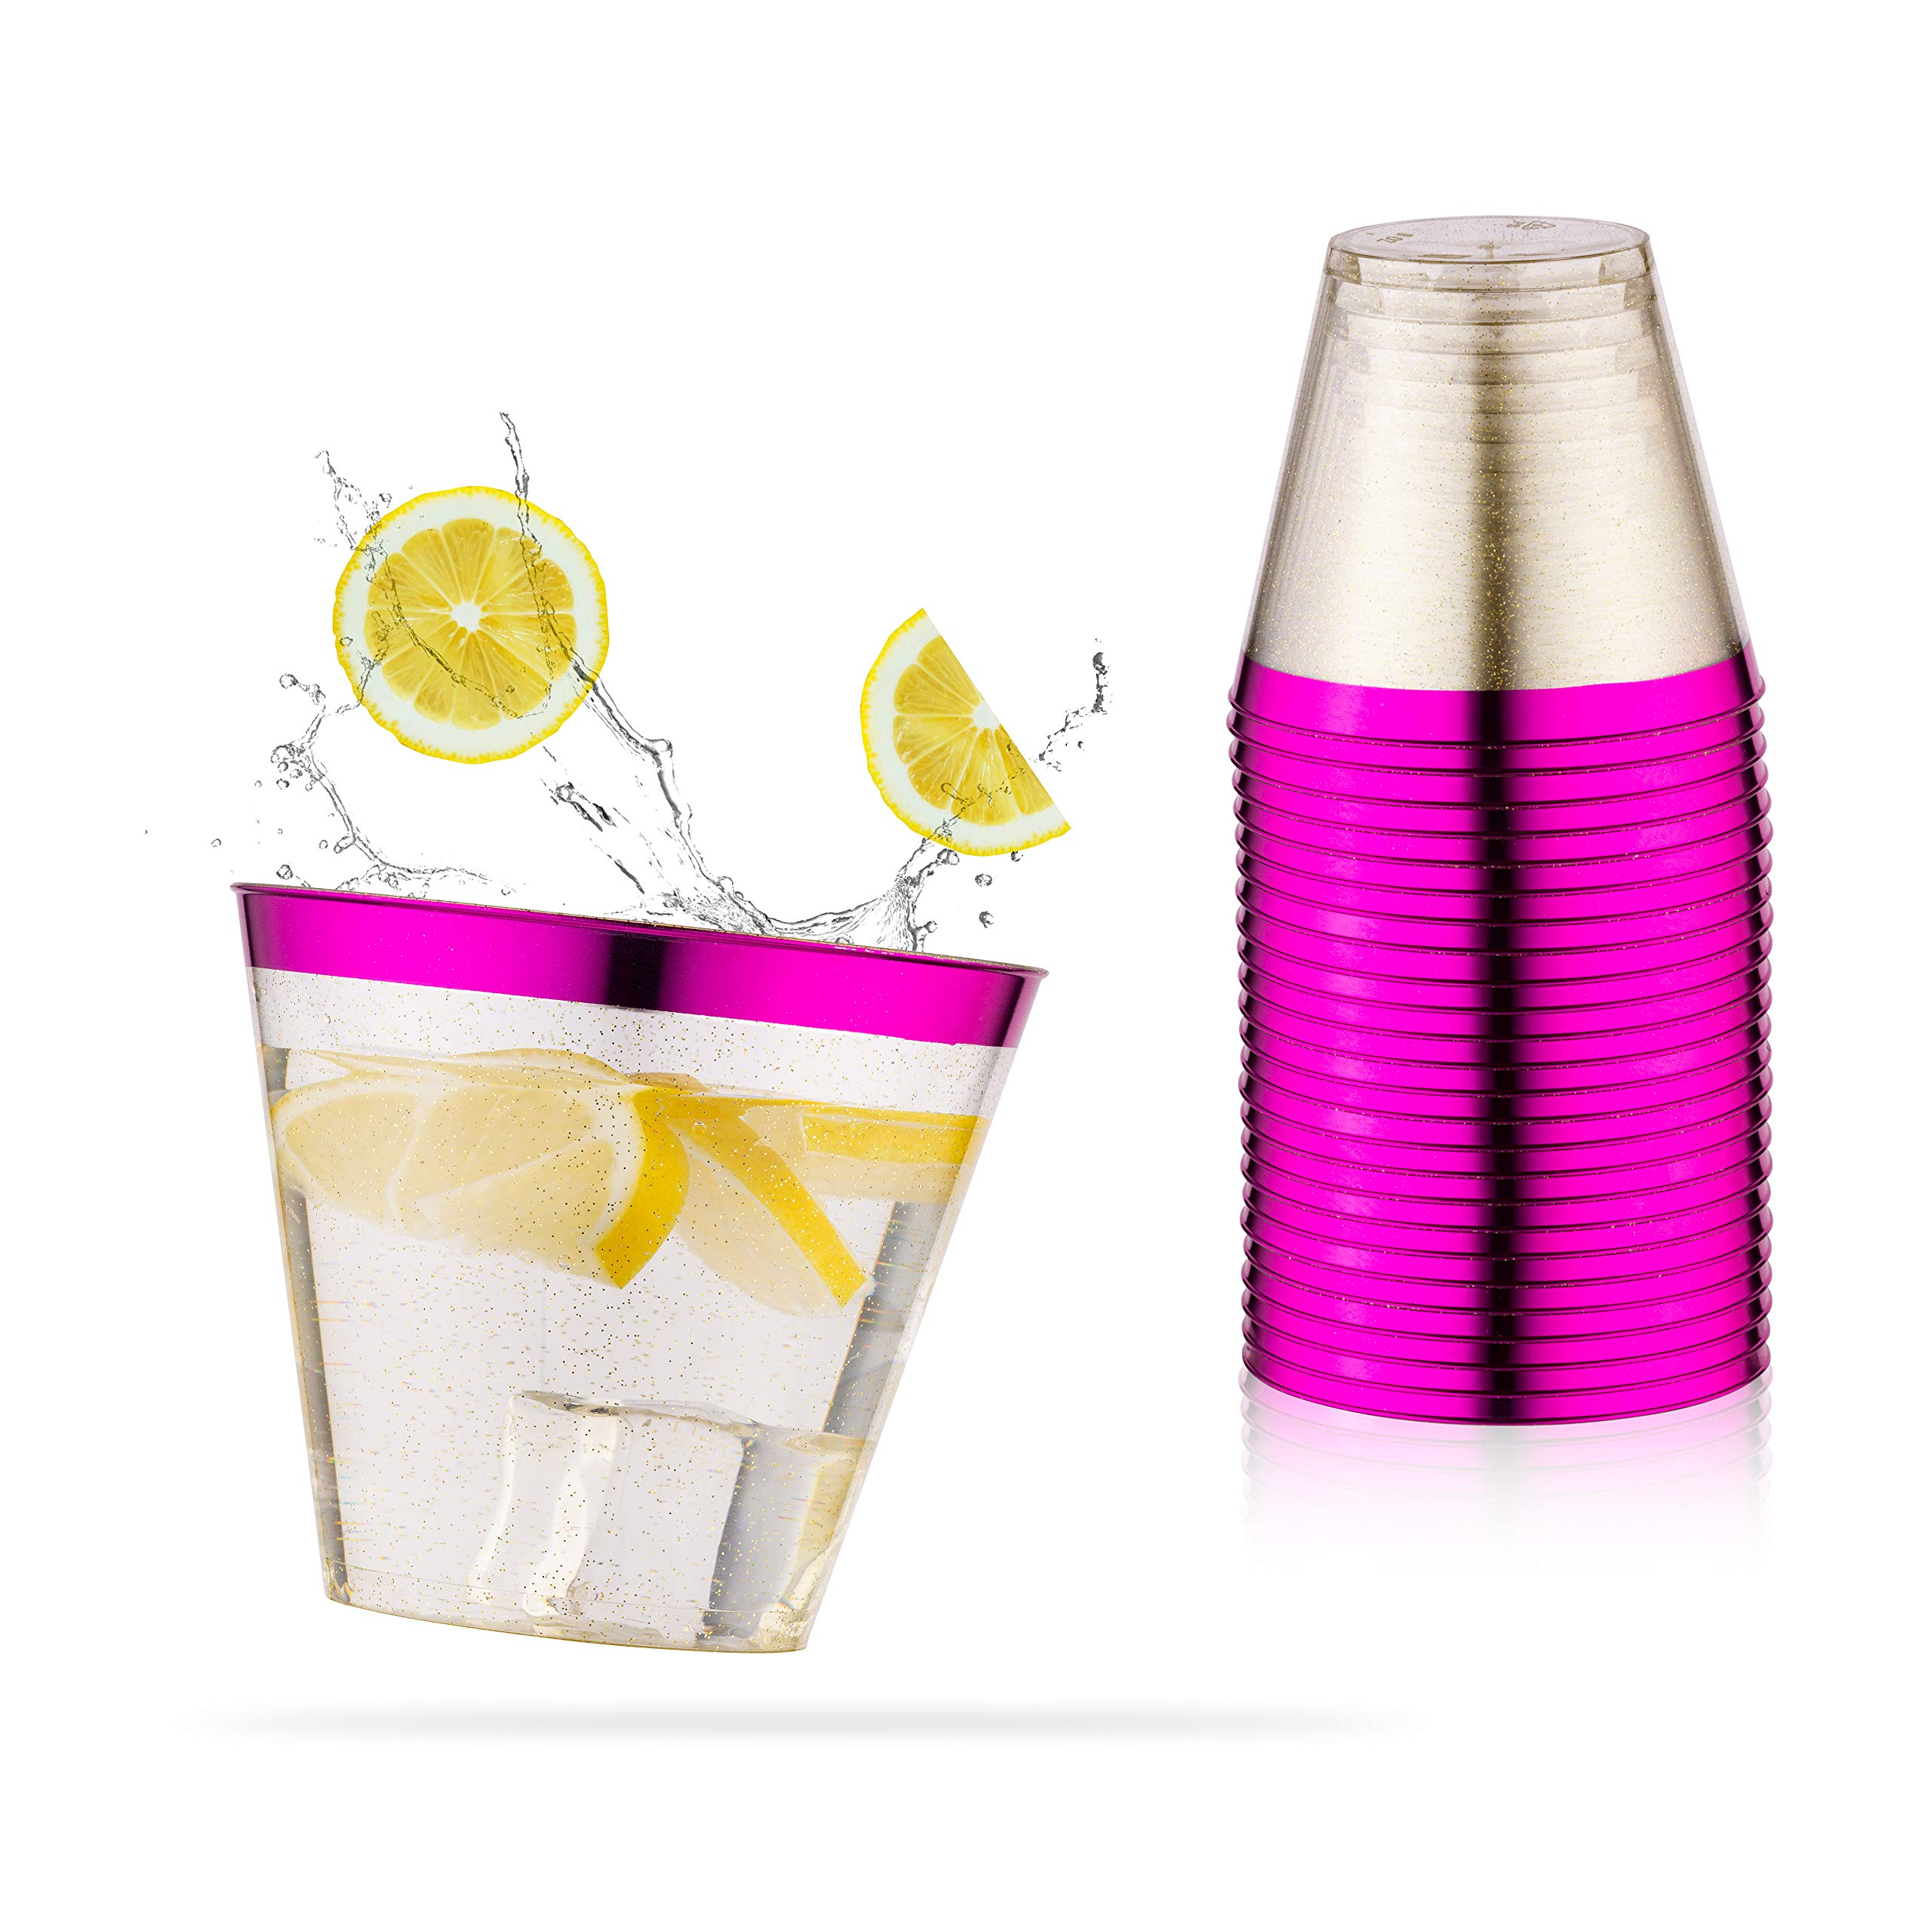 Semper-KIK Purple Disposable Cups. 9 oz Glitter Plastic Cups (Set of 100) with Shiny Purple Trim - Purple Party Supplies for Wedding Cups, Under the Sea, Mermaid Decorations, Baby Shower